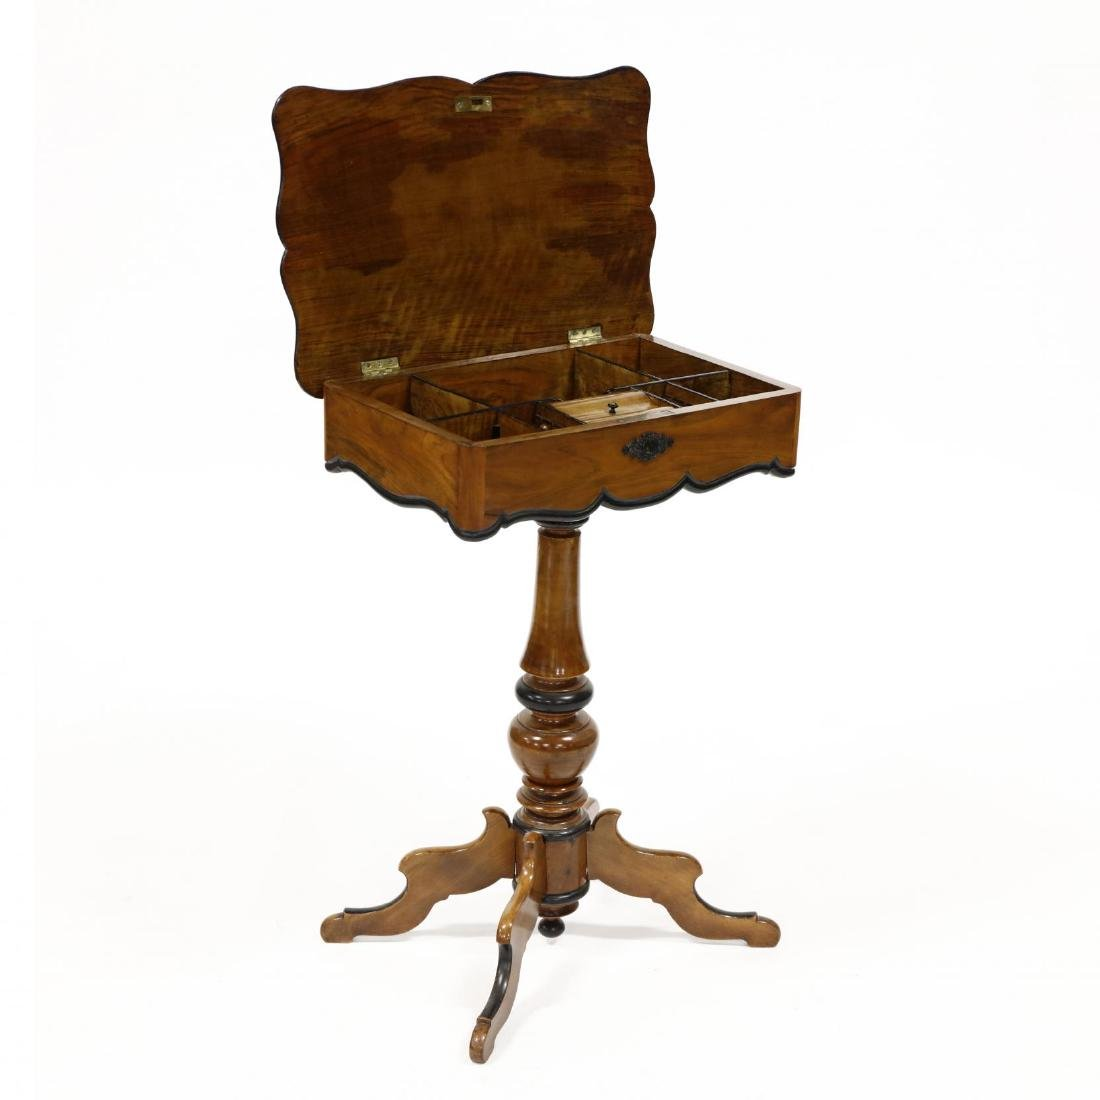 Antique English Walnut Sewing Stand